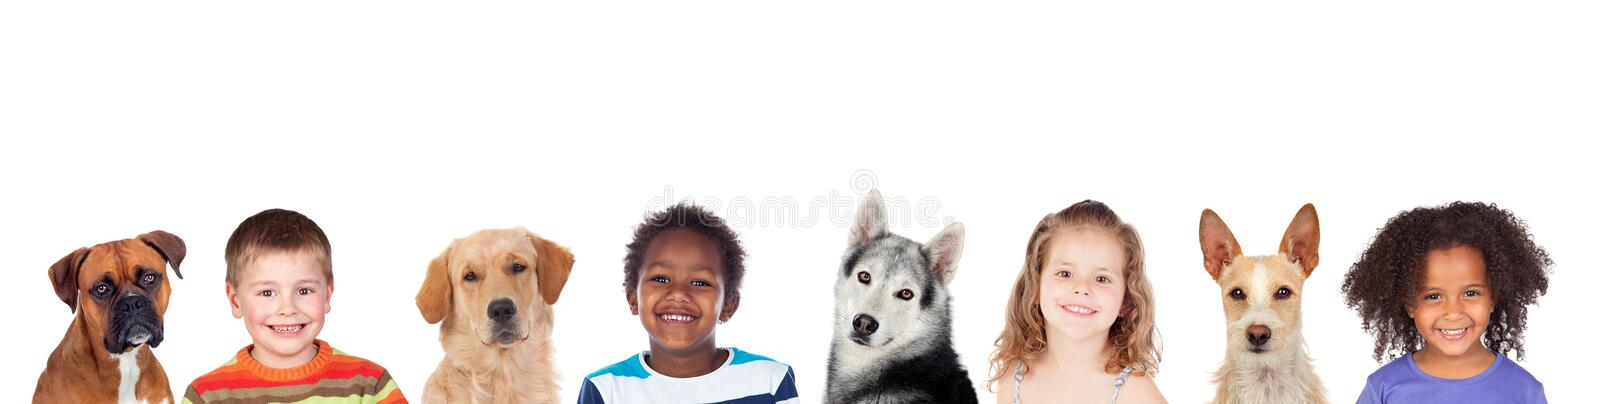 Children and dogs, a good combination stock photo